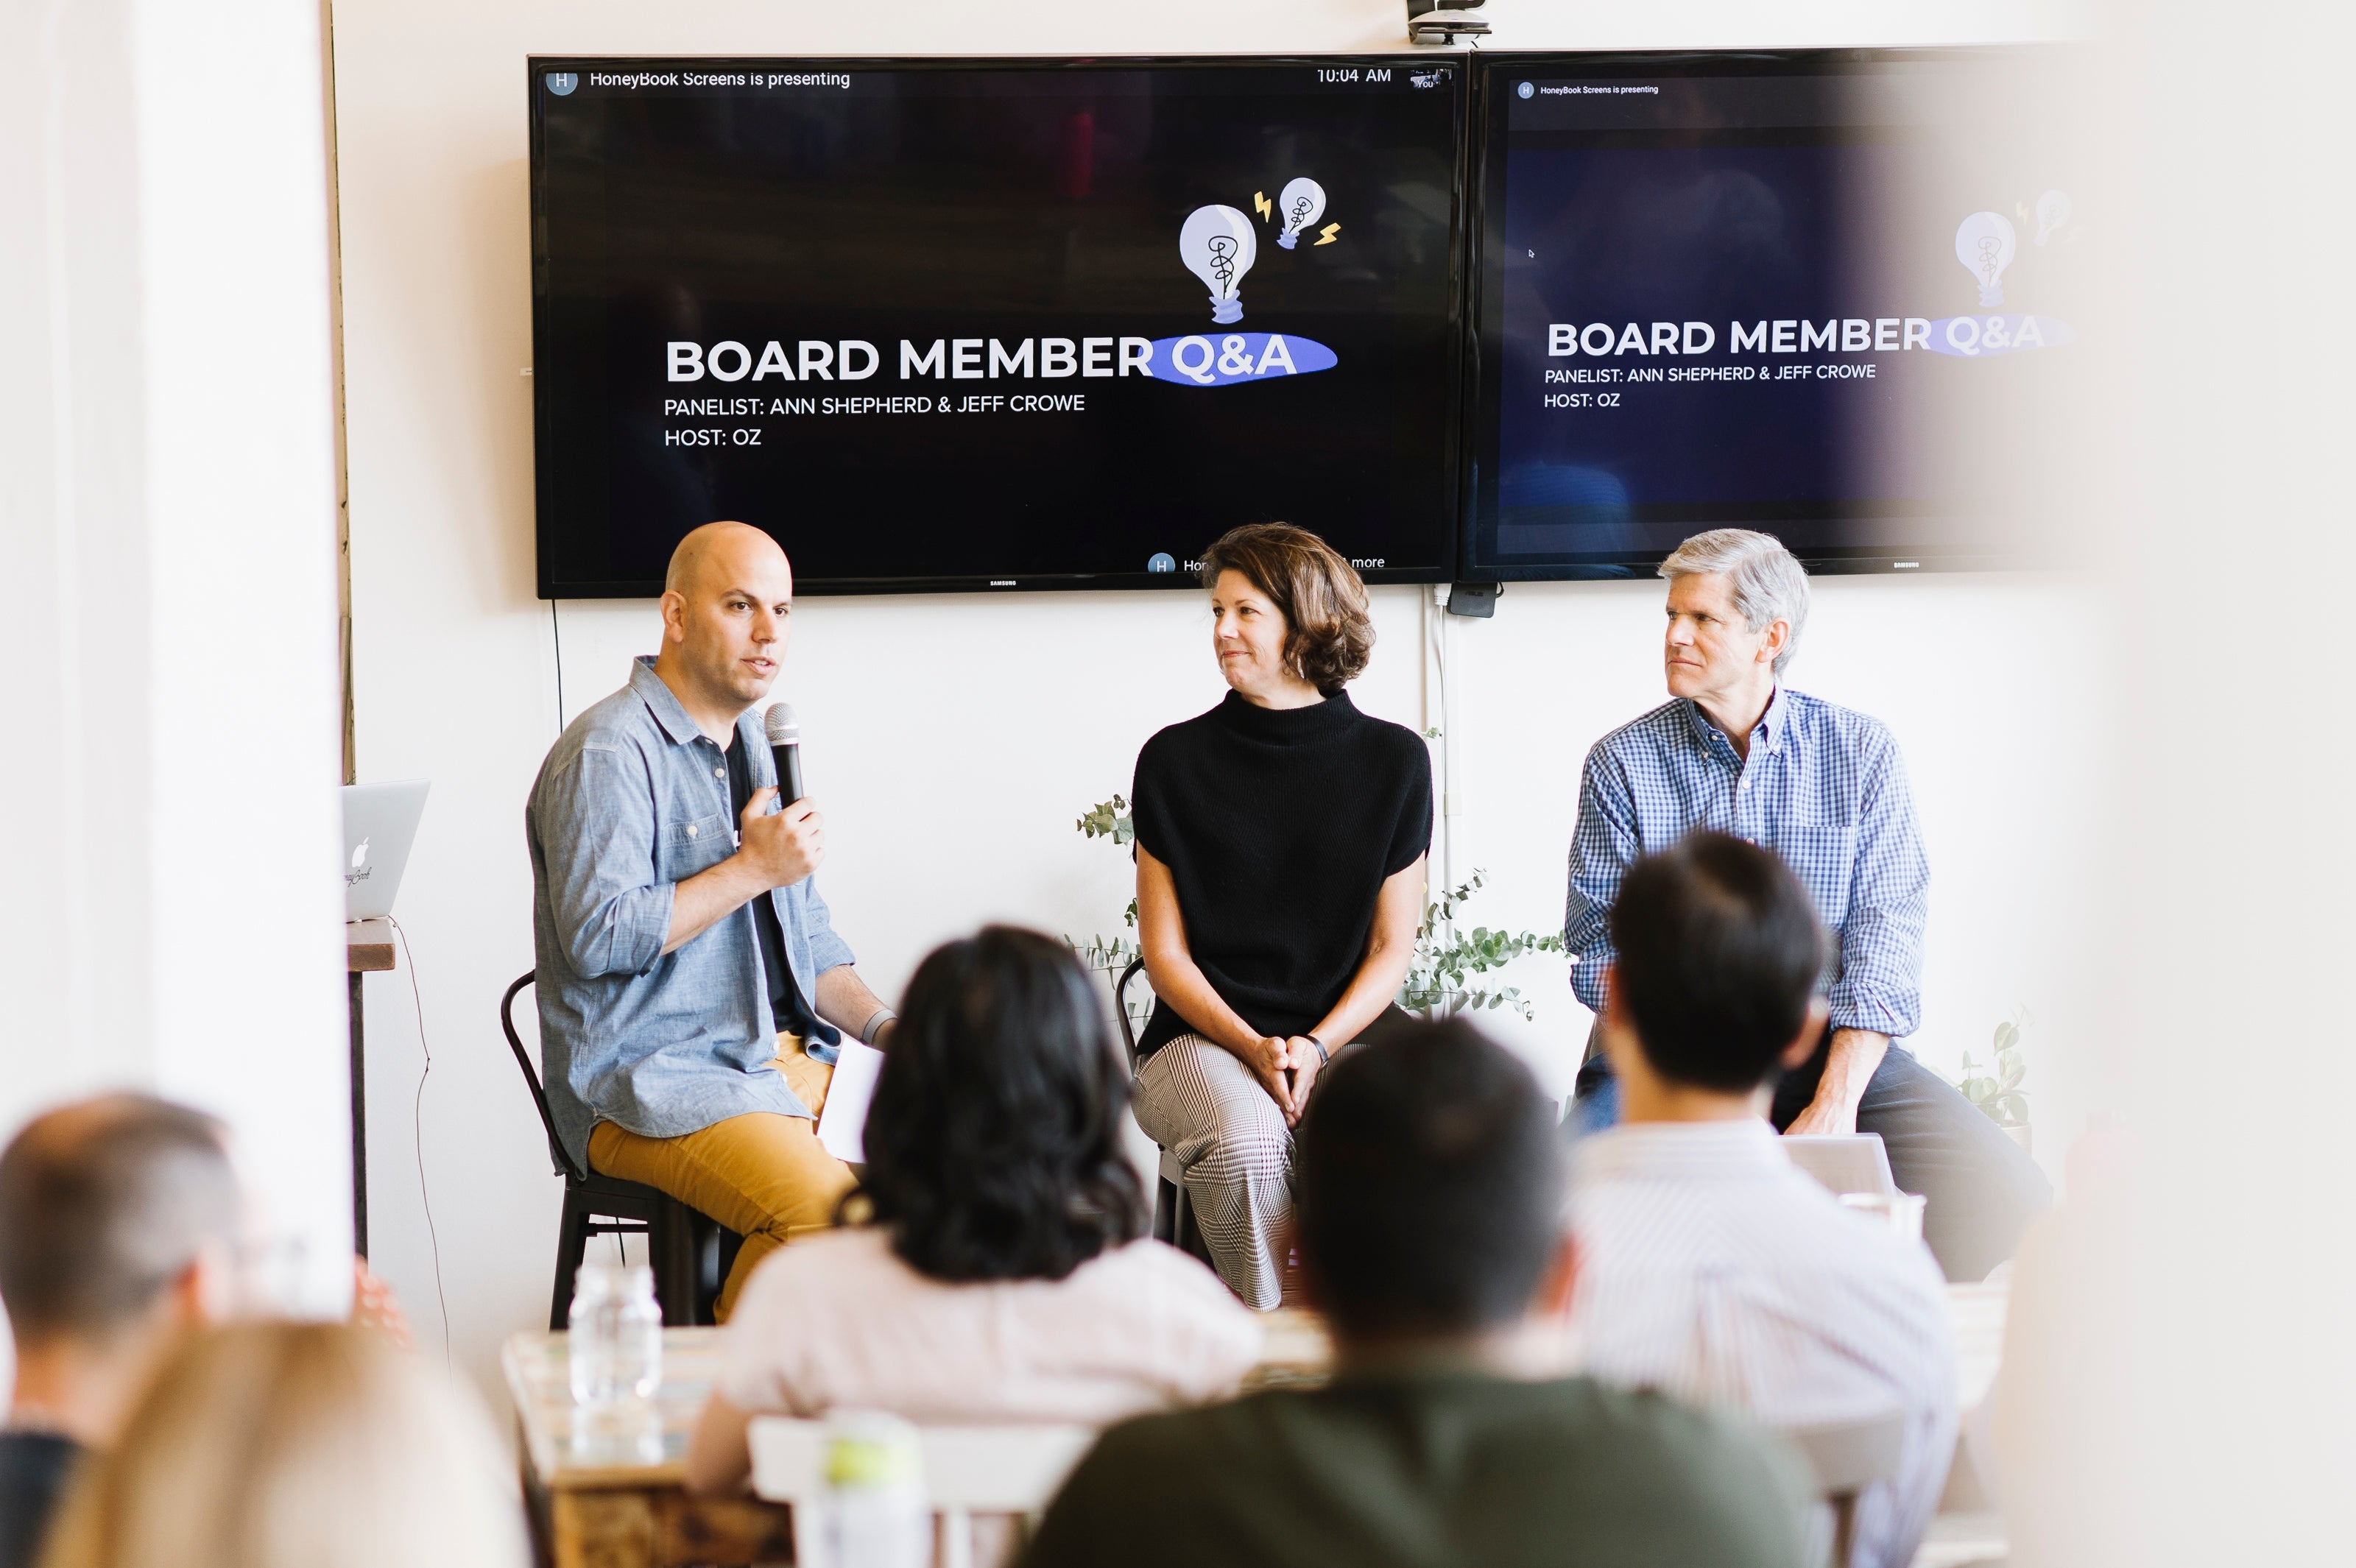 Board member question and answer meet at HoneyBook's office